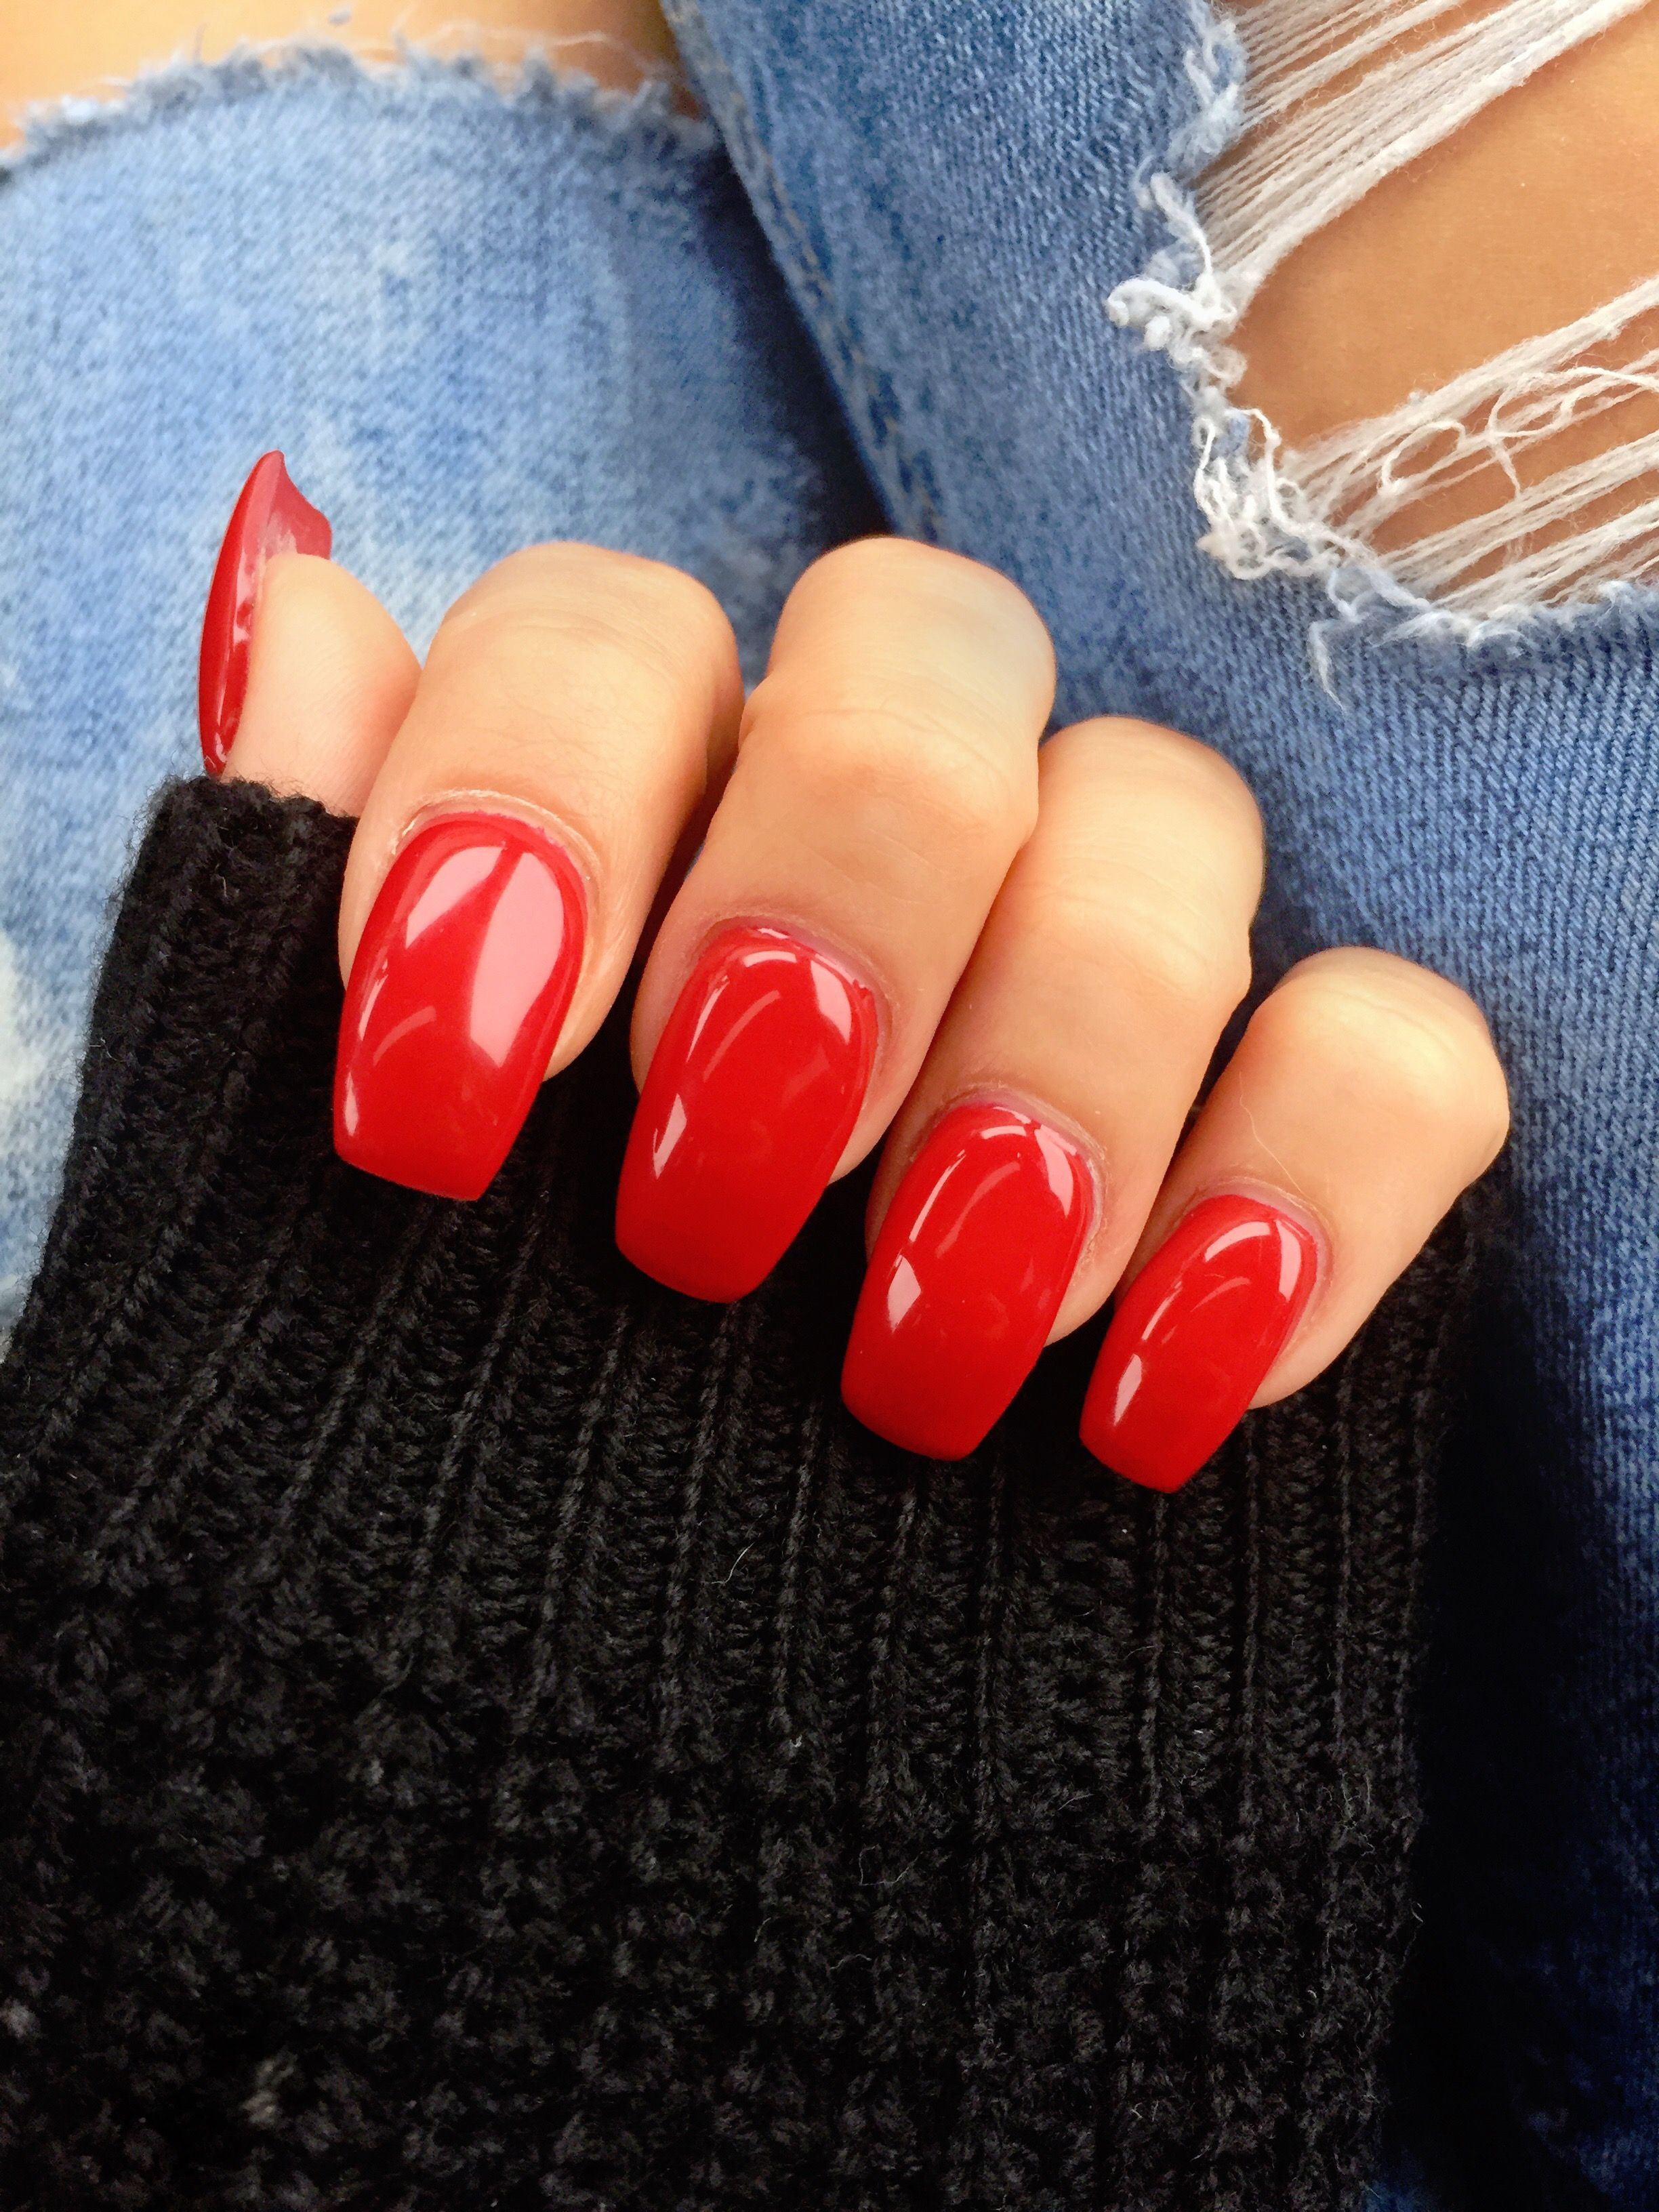 Medium Length Monroe Red Coffin Ballerina Gel Nails T Ballerina Gel Nails Red Gel Nails Red Nails